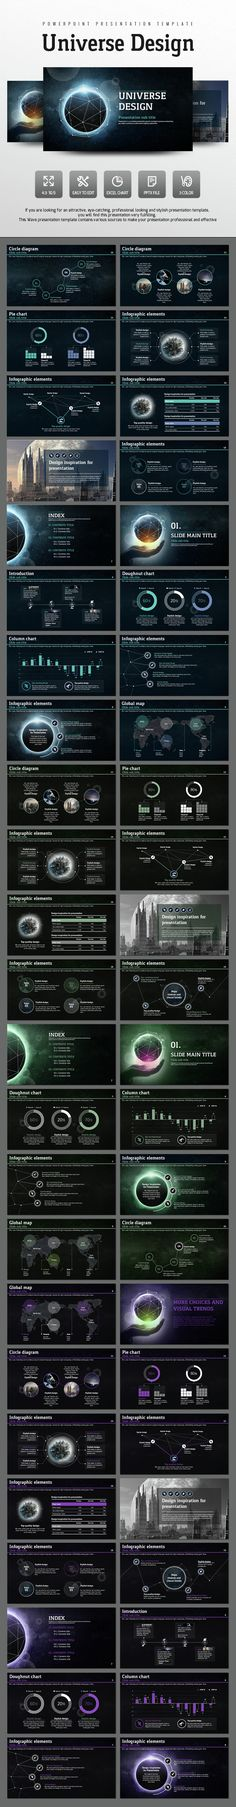 Universe Design (PowerPoint Templates)